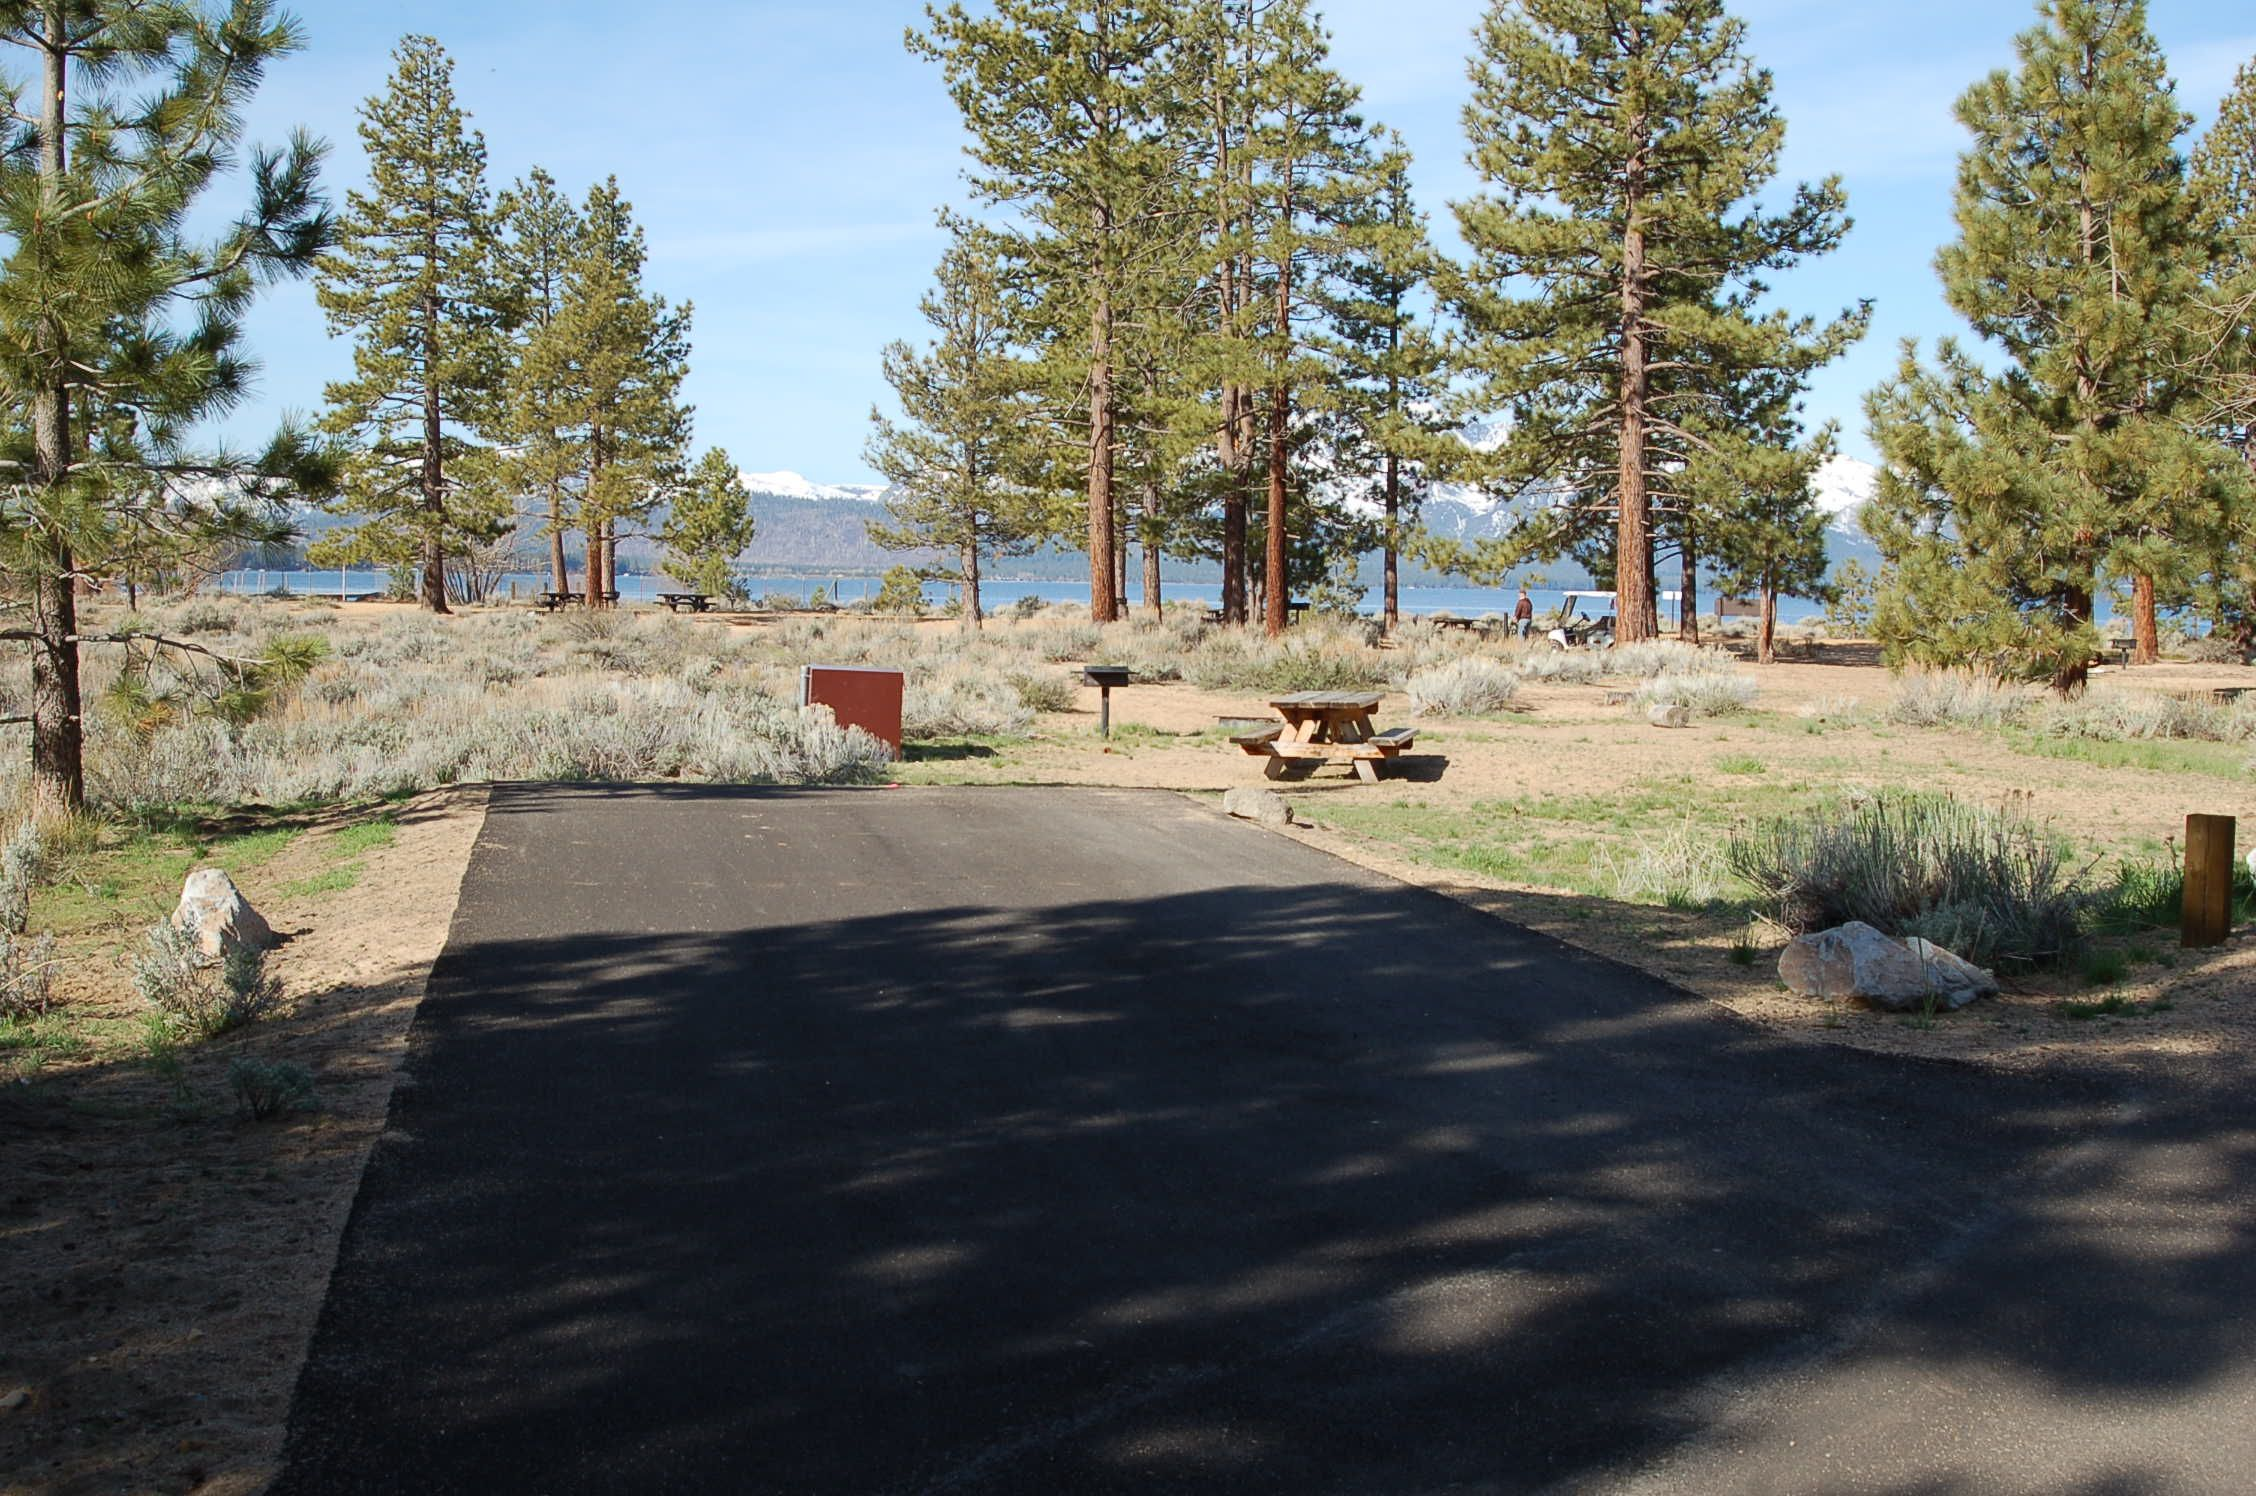 Nevada Beach Campsite Photos Reservations Camping Info In 2020 Lake Tahoe Beach Colorado Skiing Camping Reservations